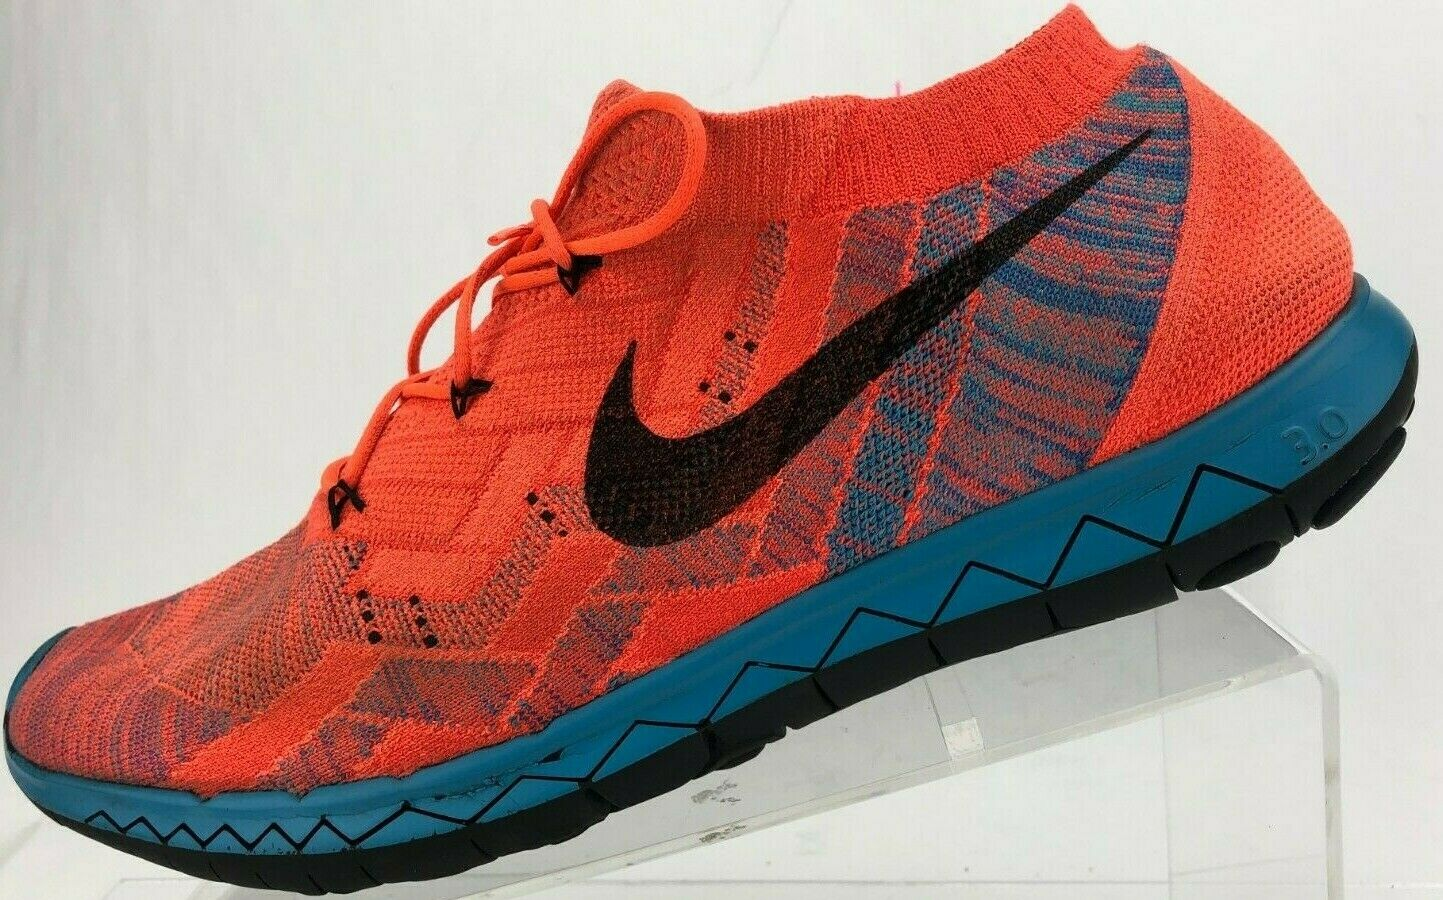 Nike 3.0 Flyknit Running Running Running shoes orange bluee Training Athletic Sneakers Mens 12.5 0bf936